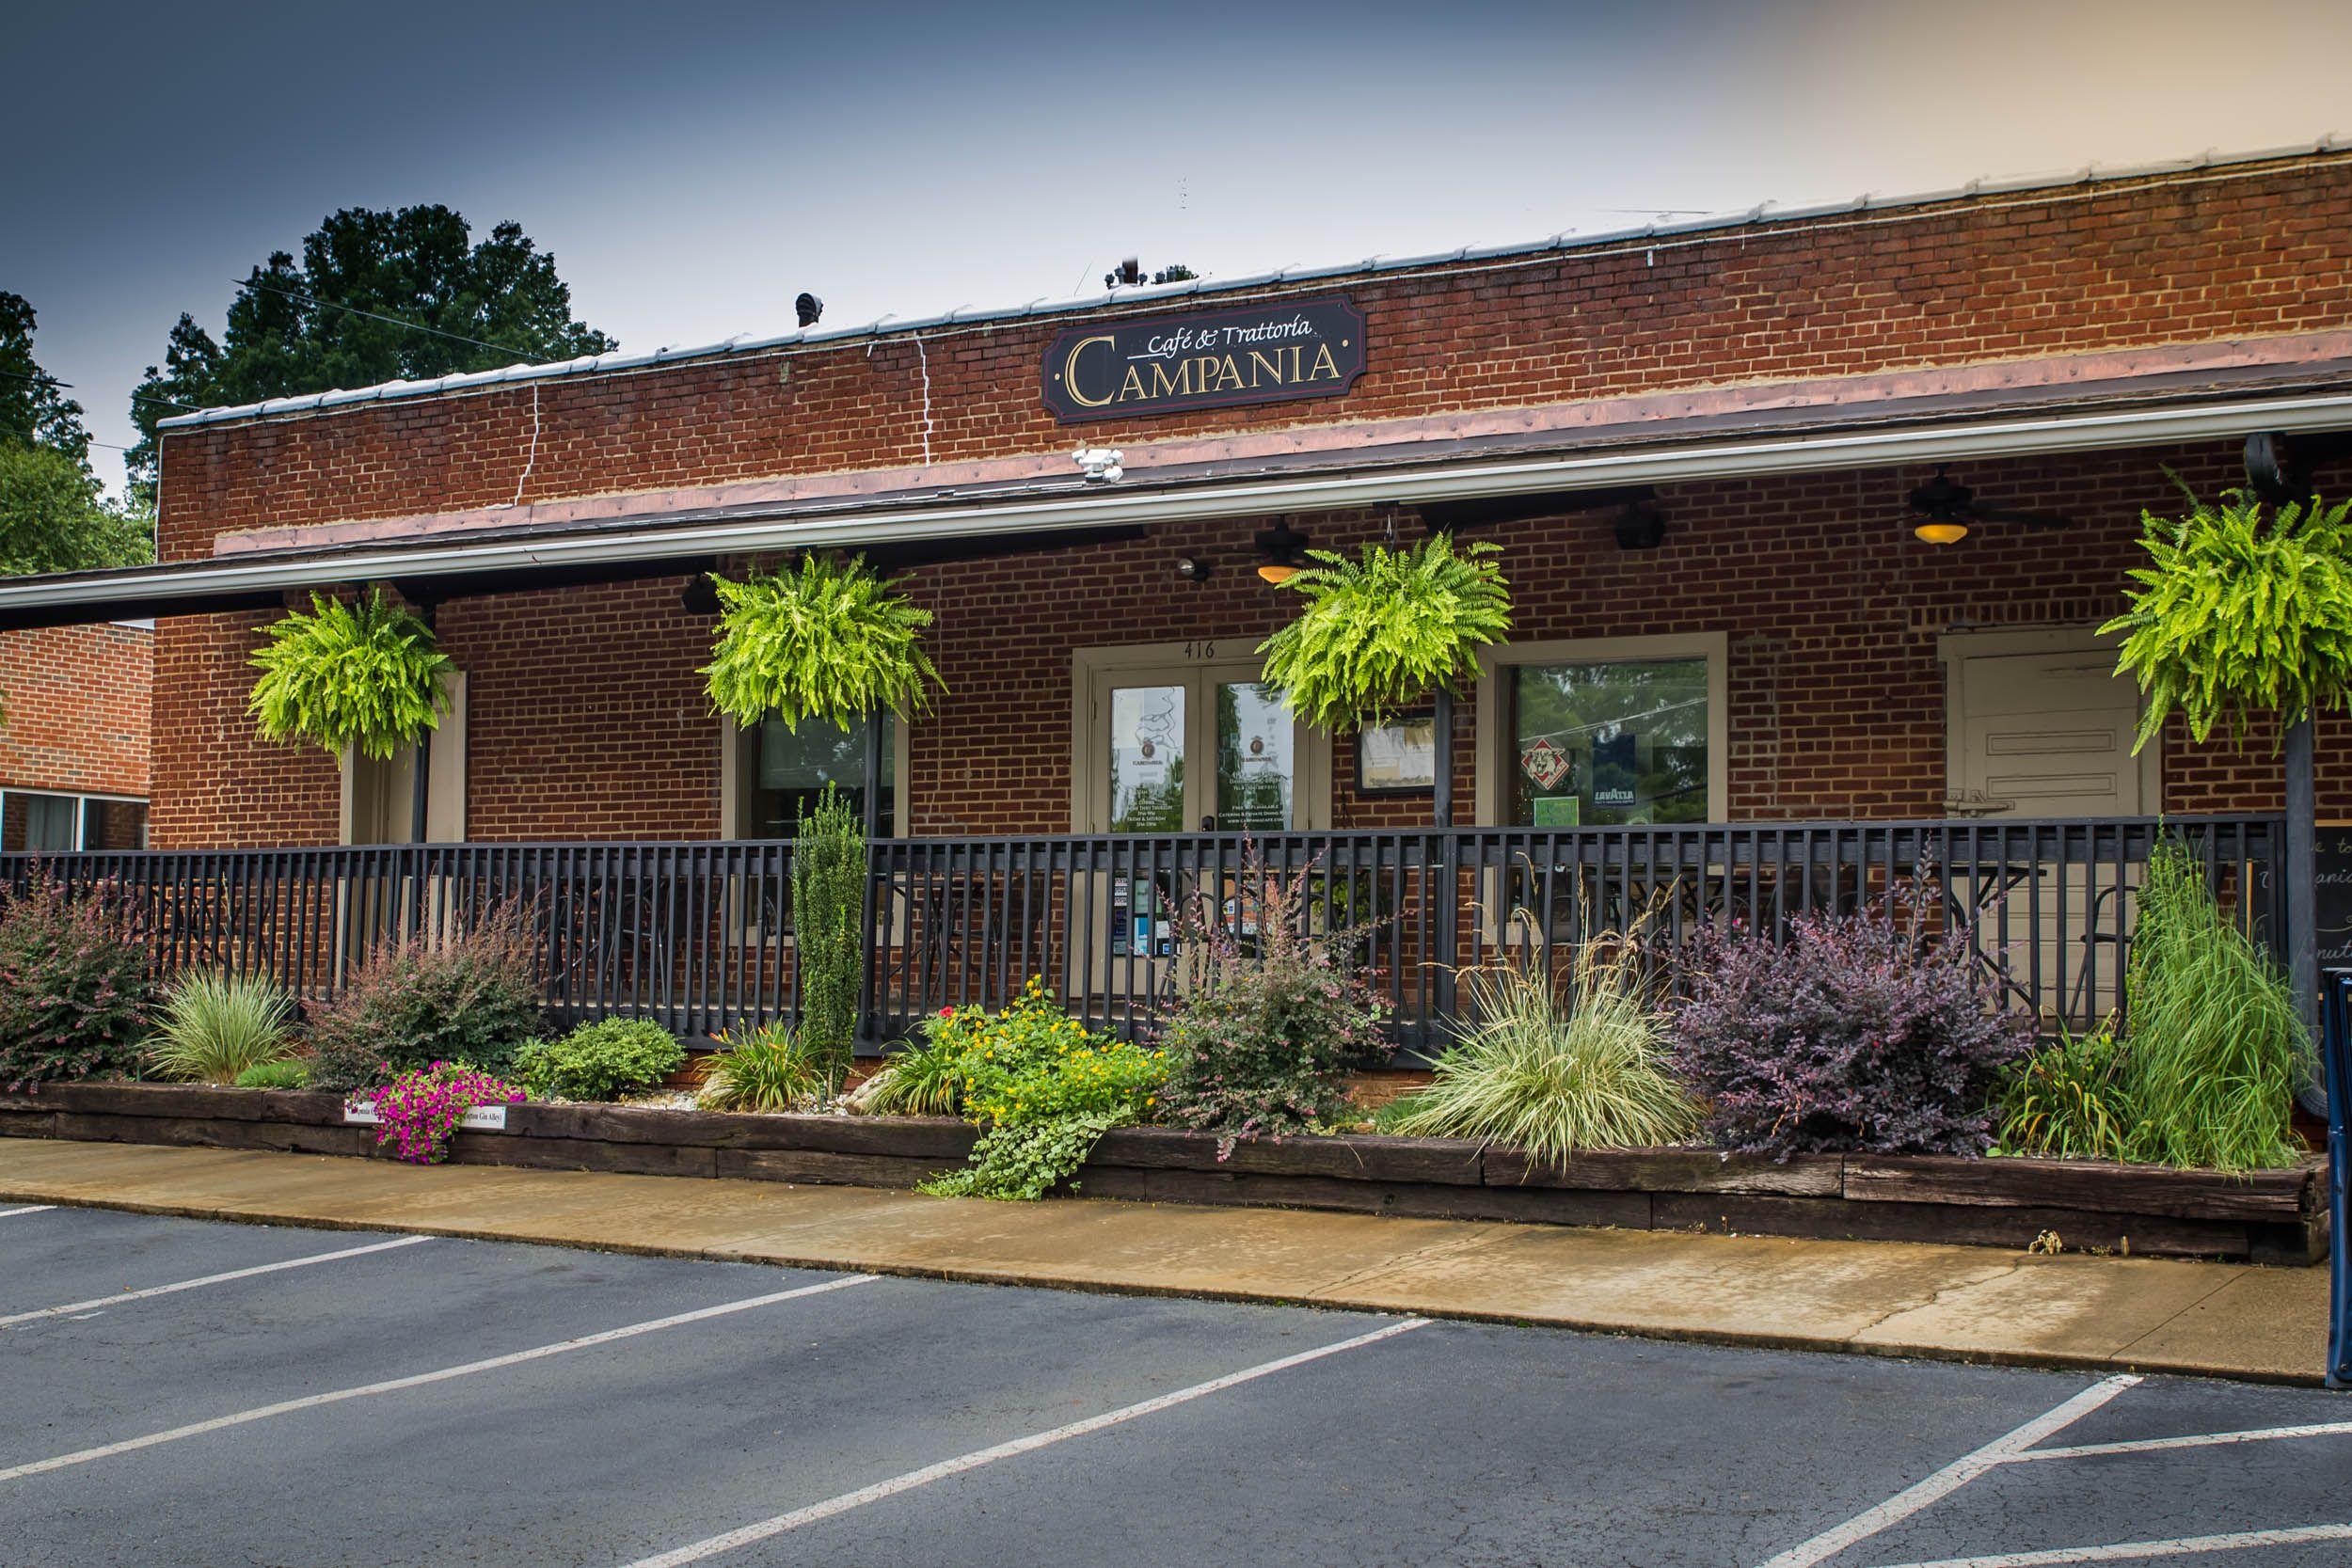 Campania Cafe & Trattoria, located in the Historic Ice